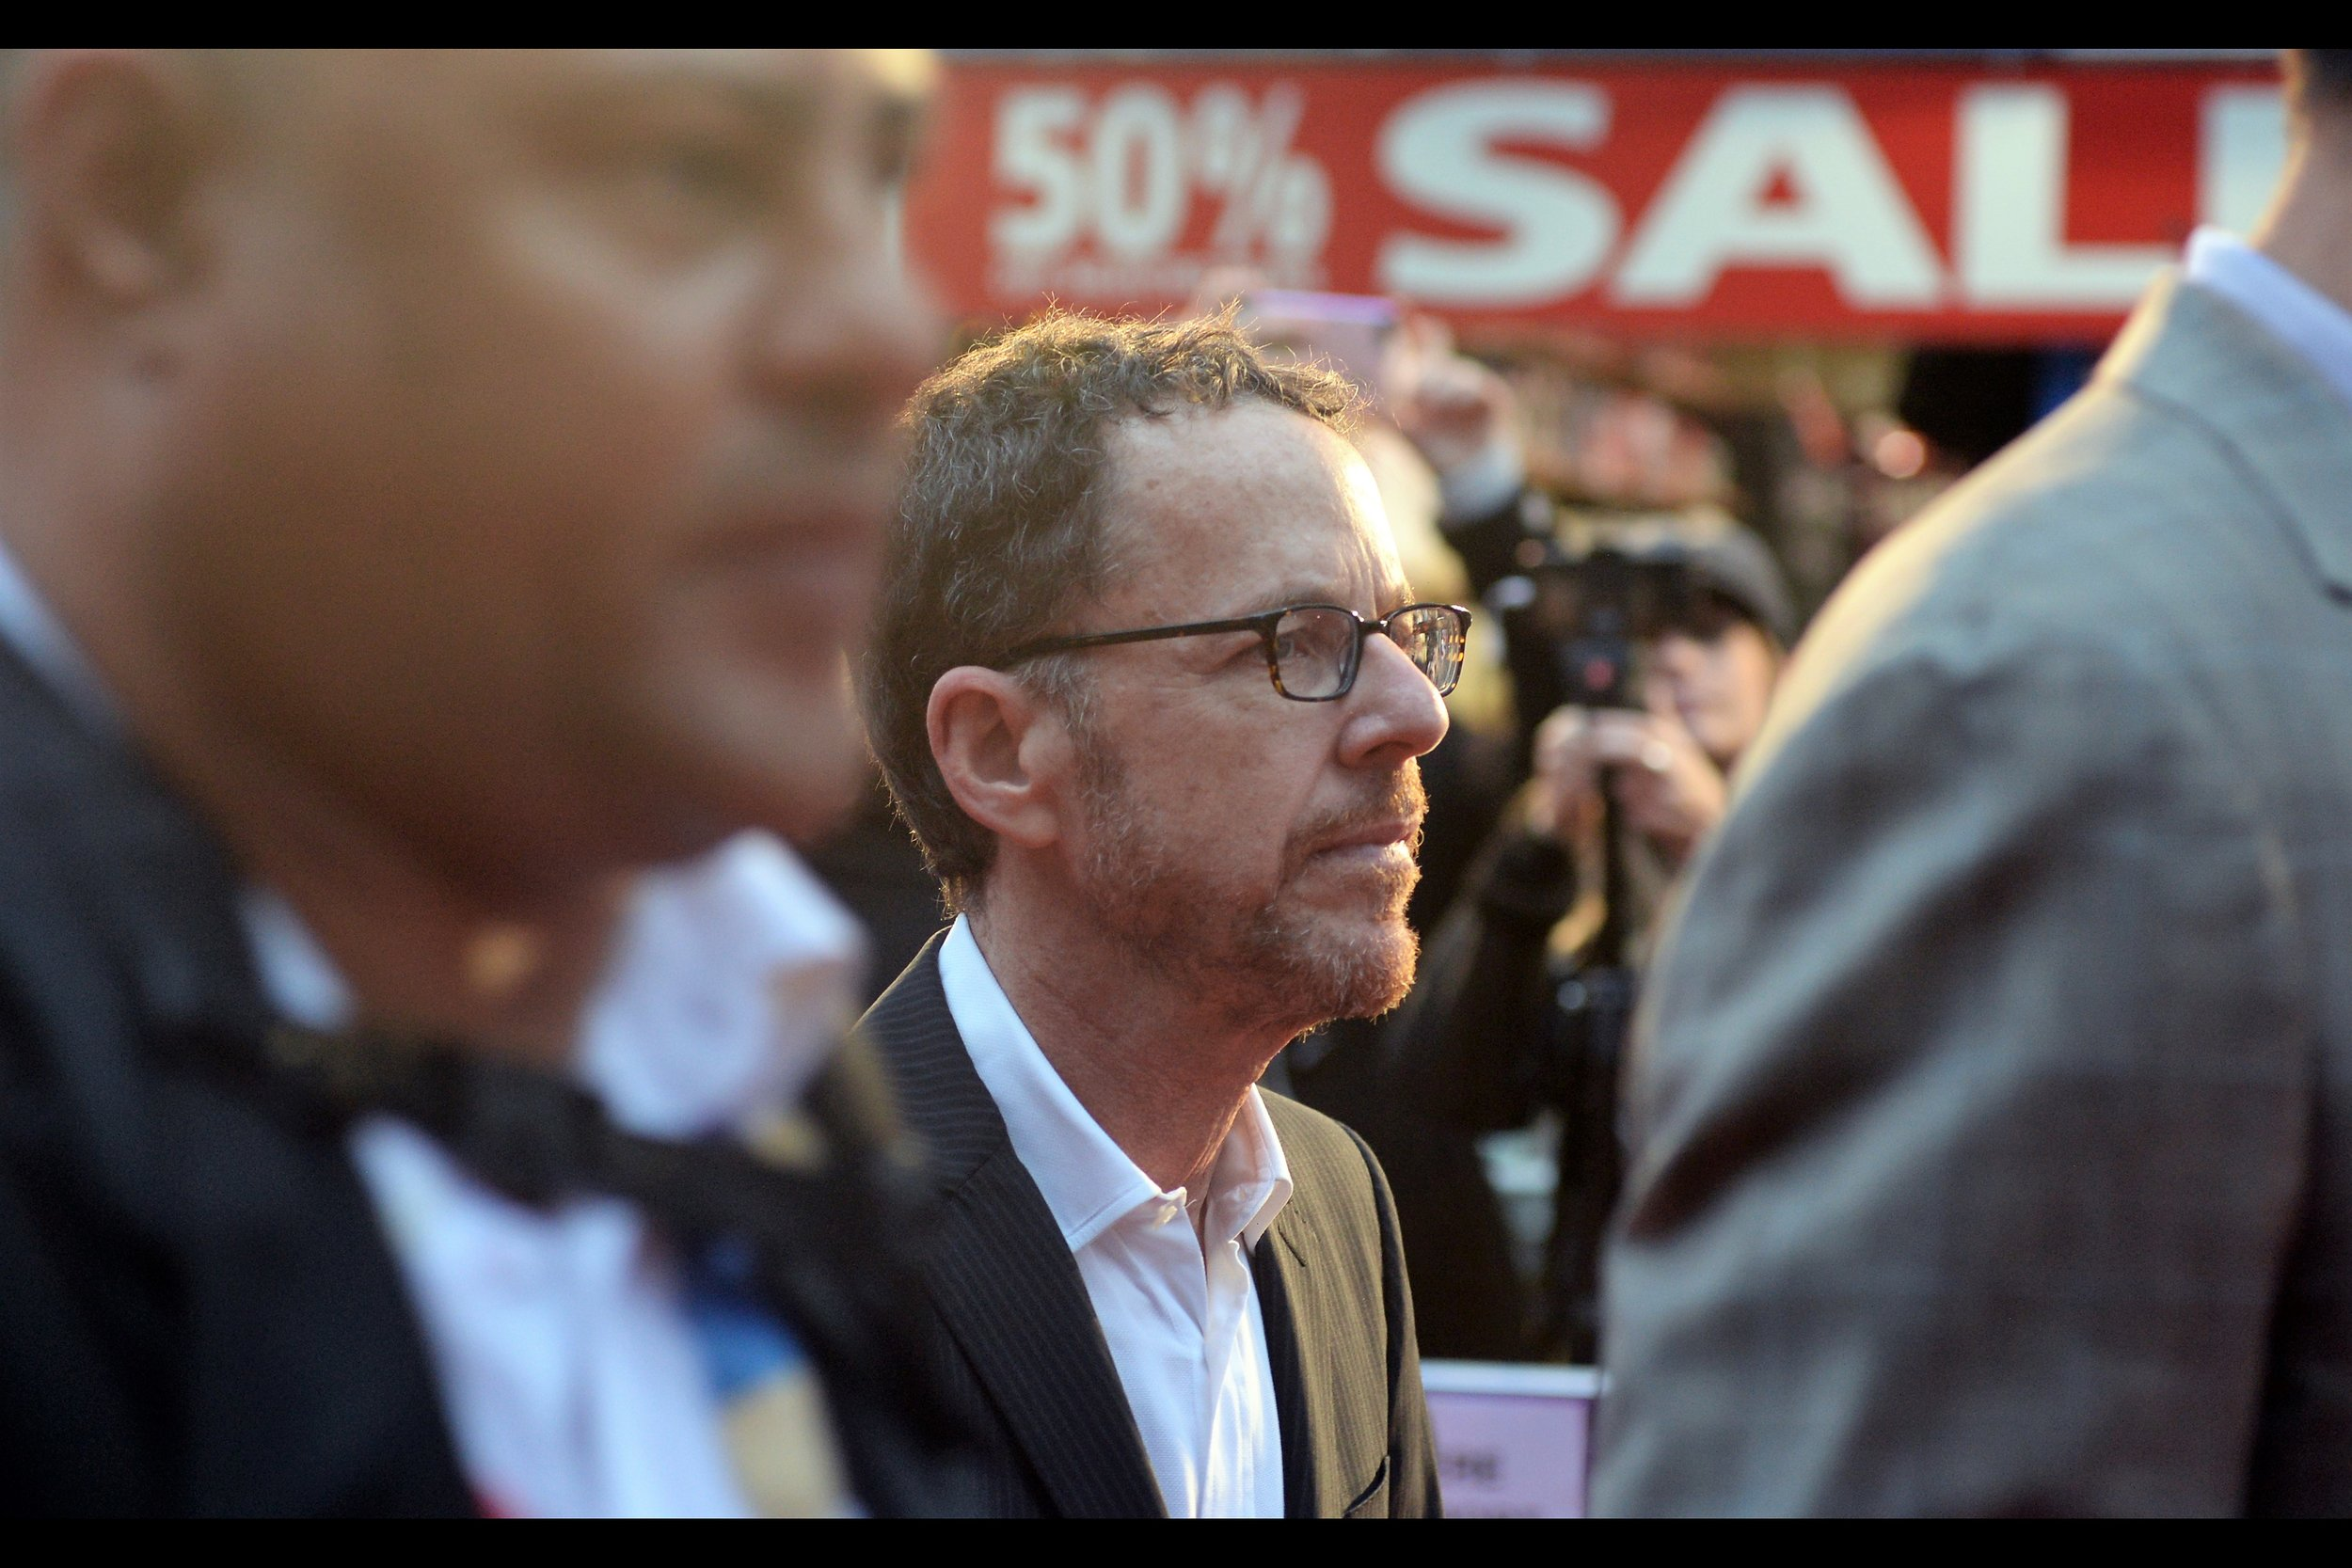 """It's only slightly better than a side-profile photo of Ethan Coen, but at least I did frame him against the increasingly iconic """" 50% SALE """" signs I've already photographed the likes of    director Steve McQueen    (and, a long time ago,    Bill Murray   ) in front of."""